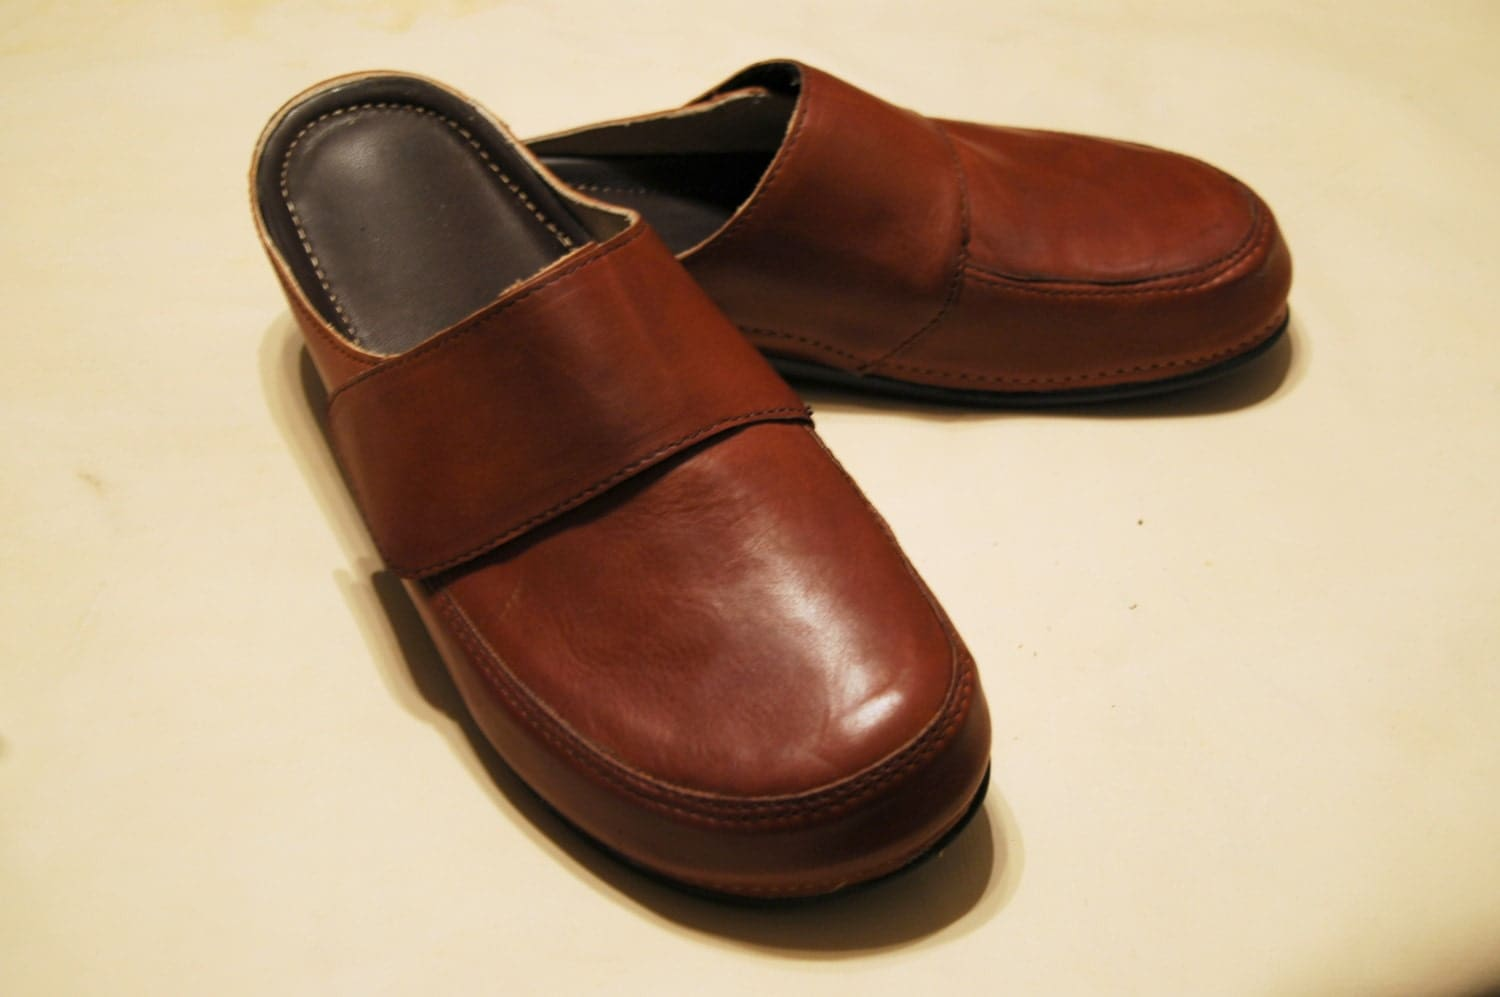 leather shoes leather clogs in brown for comfortable